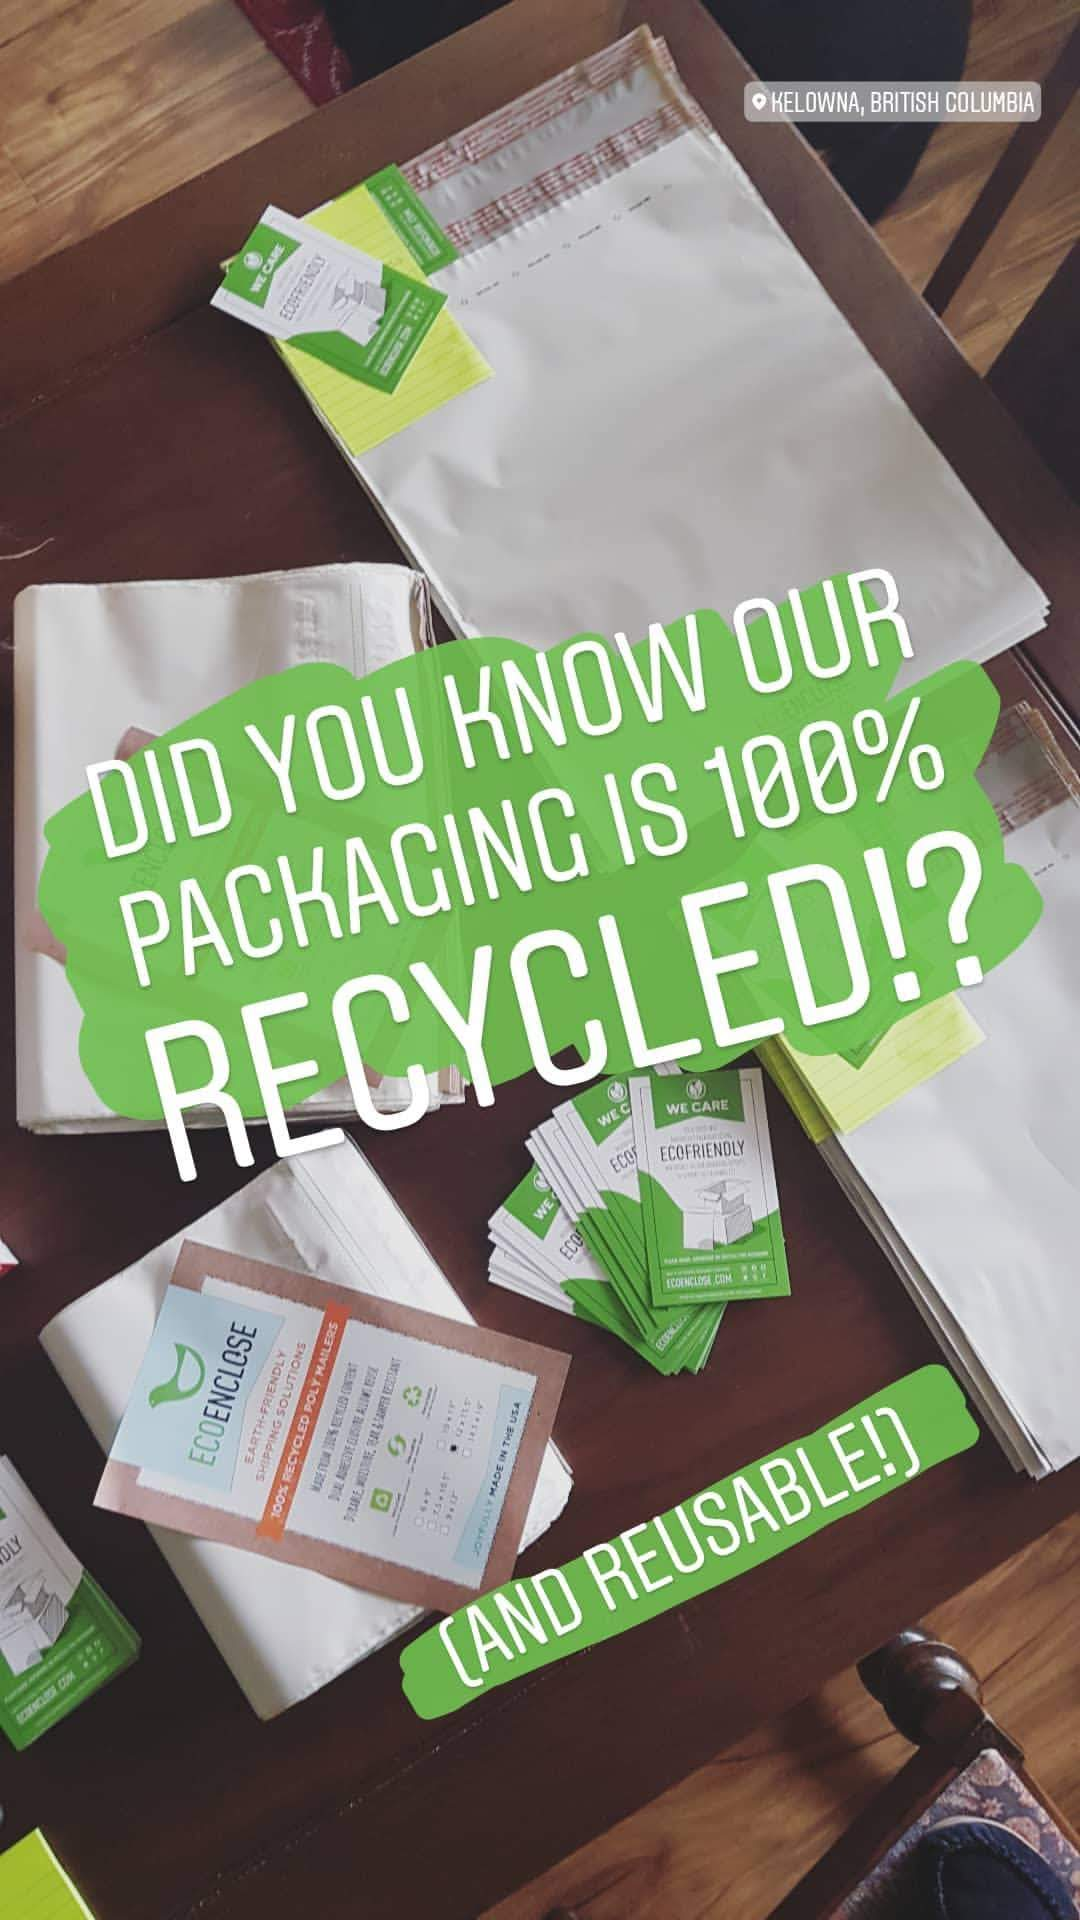 Our Eco-Enclose Packaging